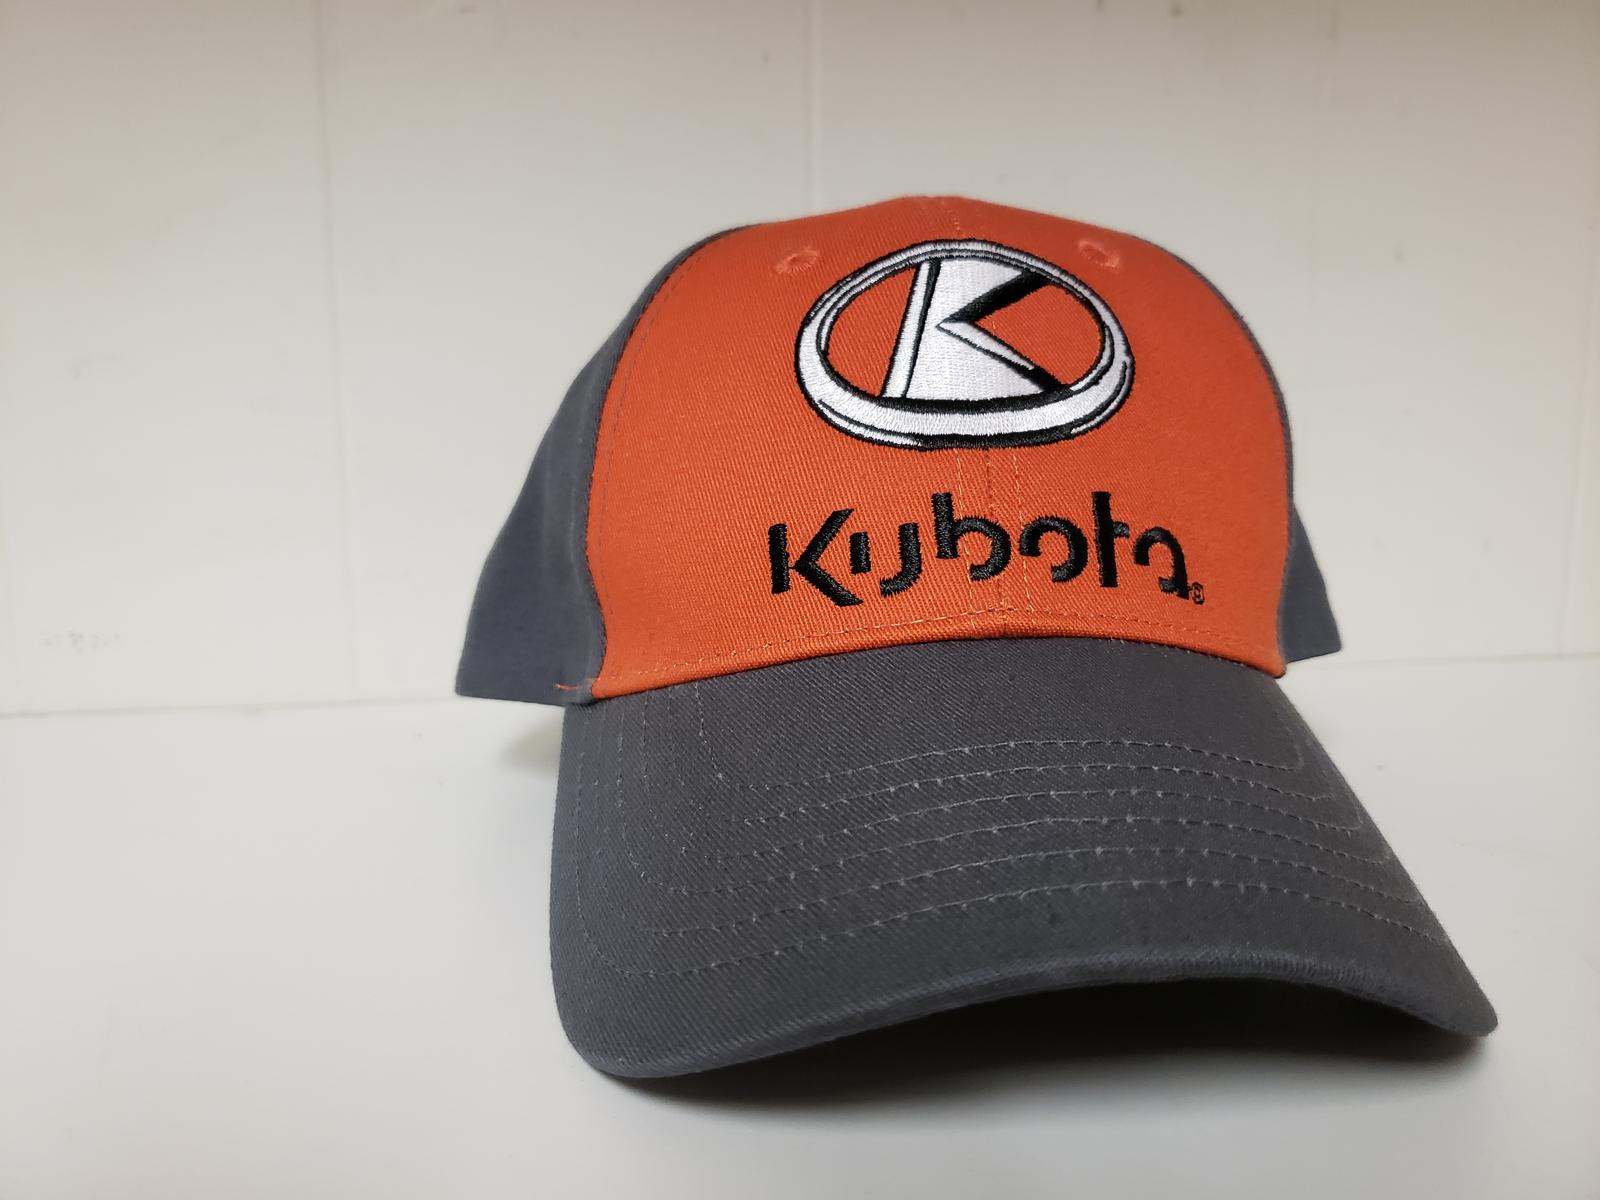 e9bf97d91f0 Kubota Orange and Grey Hat for sale in Quincy